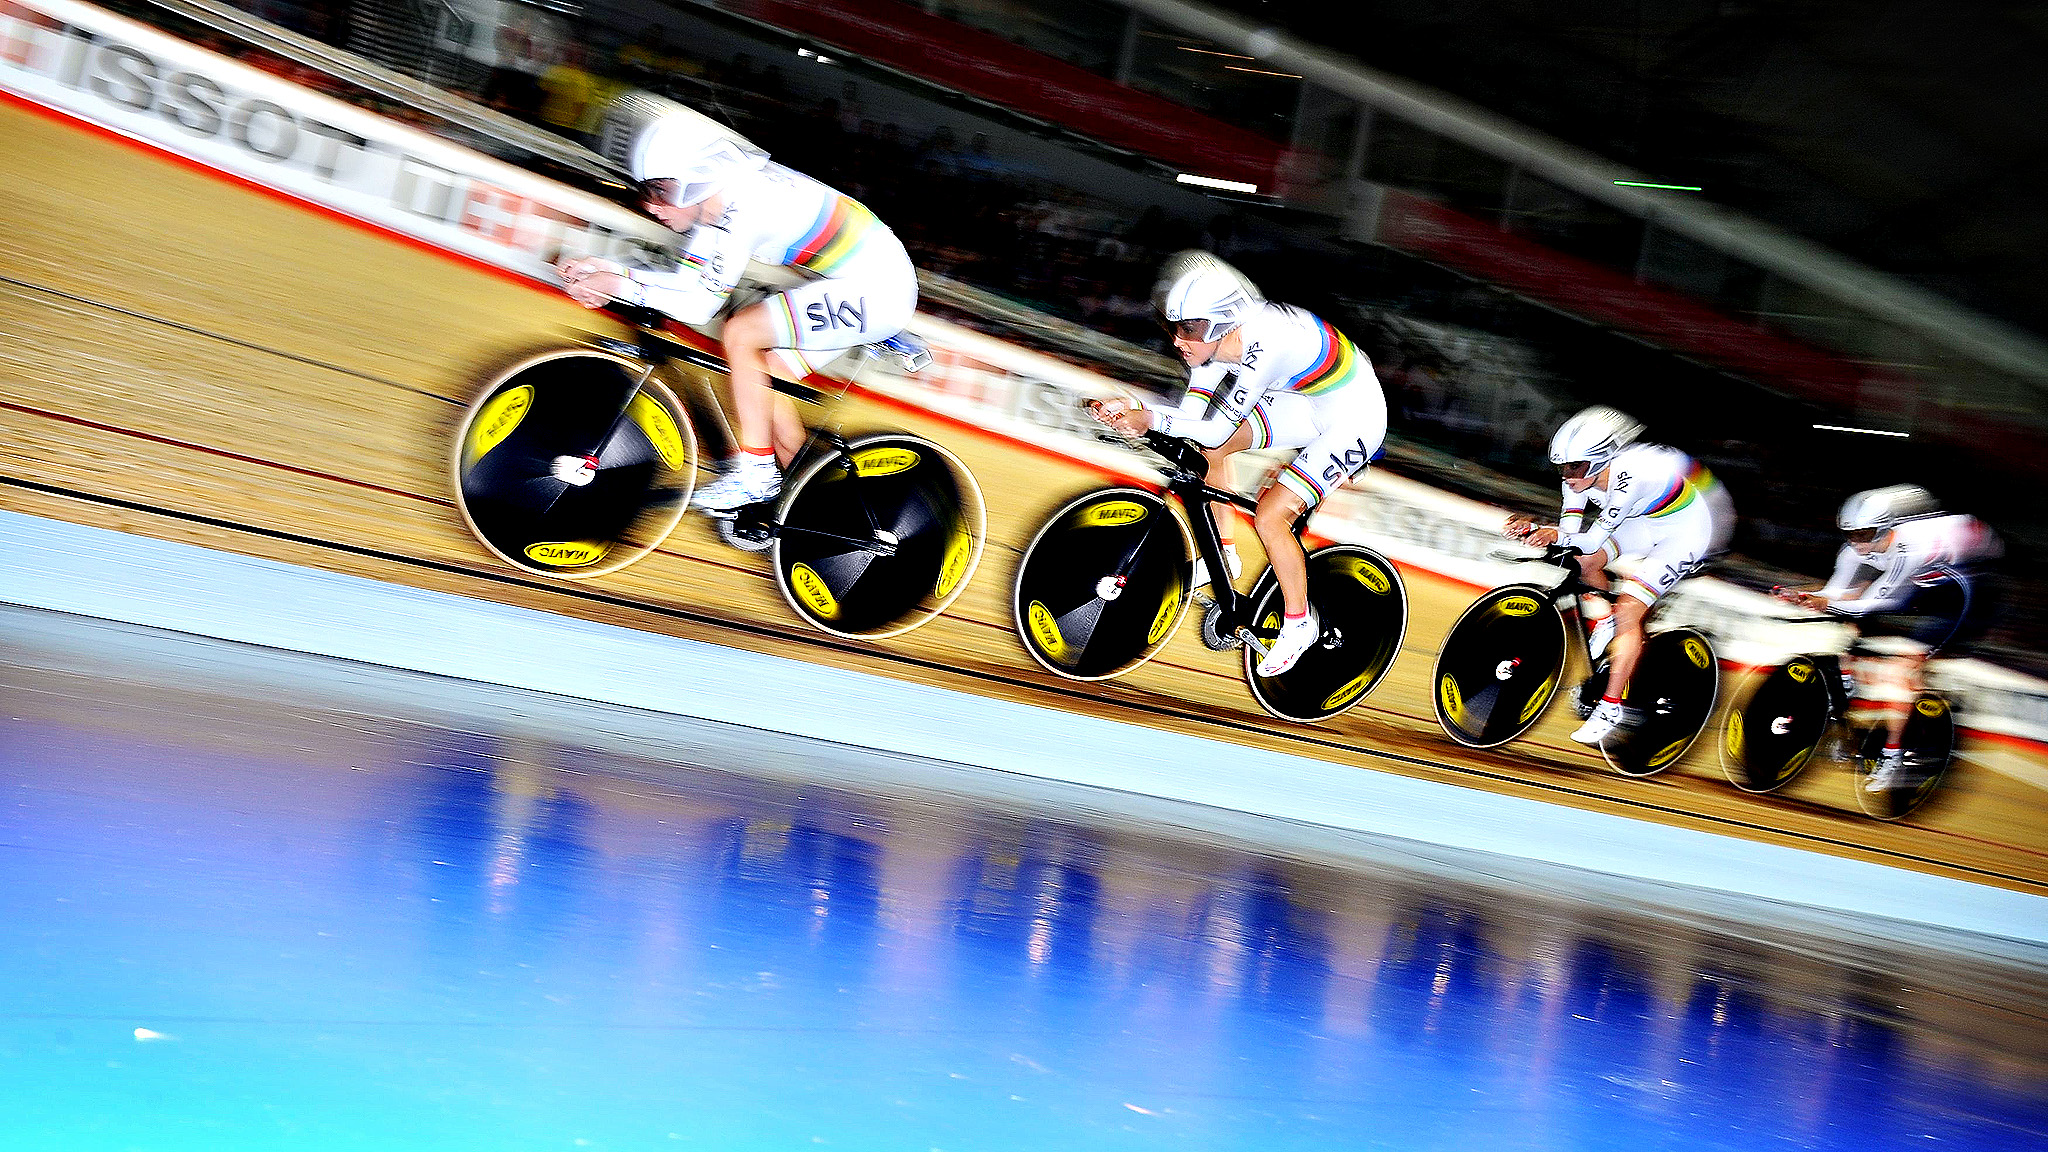 Great Britian's (left to Right) Laura Trott, Dani King, Elinor Barker and Joanna Rowsell, on their way to breaking the world record in the Women's Team , Pursuit during day one of the 2013 UCI Track Cycling World Cup at the National Cycling Centre, Manchester.